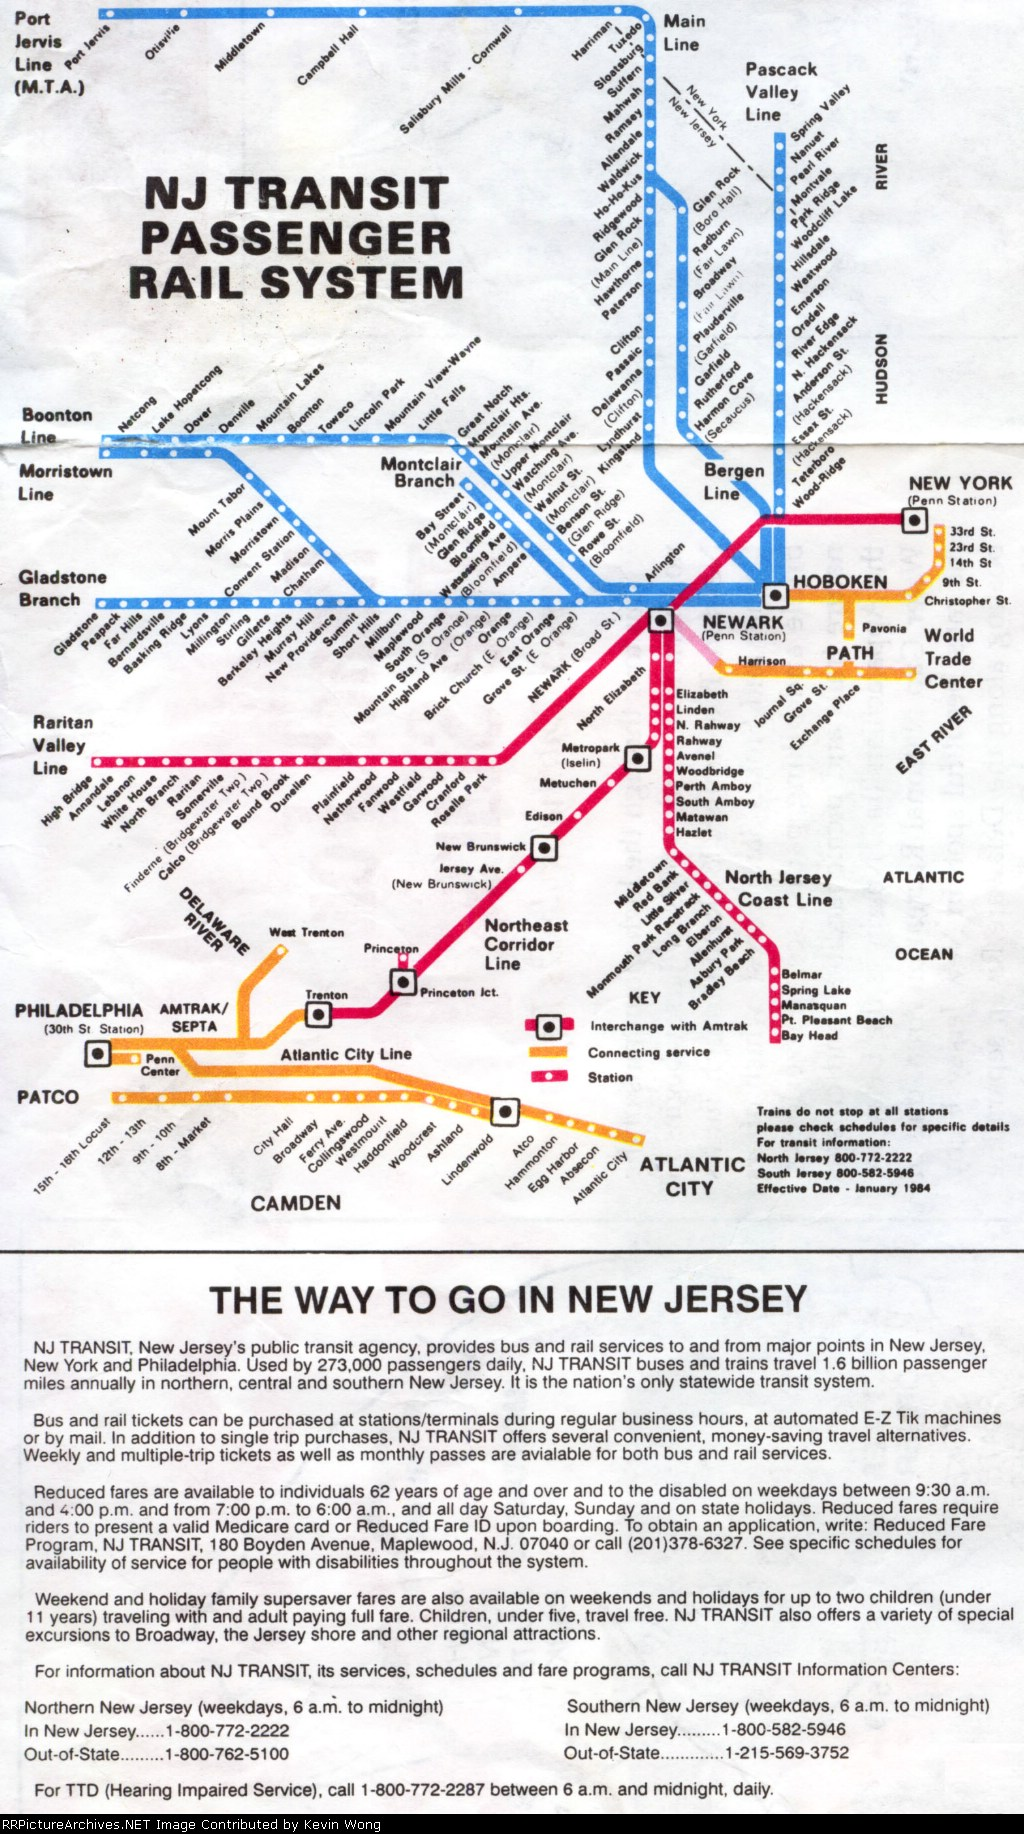 NJ Transit system map/guide, effective January 1984 on agenda 21 map, nyct map, new york airtrain map, lirr map, secaucus junction map, new york city transit map, nrg map, meadowlands rail line map, pittsburgh light rail system map, csx map, mmc map, nsa map, new york transit bus map, marc map, acela map, kcs map, nj map, metronorth map, newark penn station map, jersey city transit map,